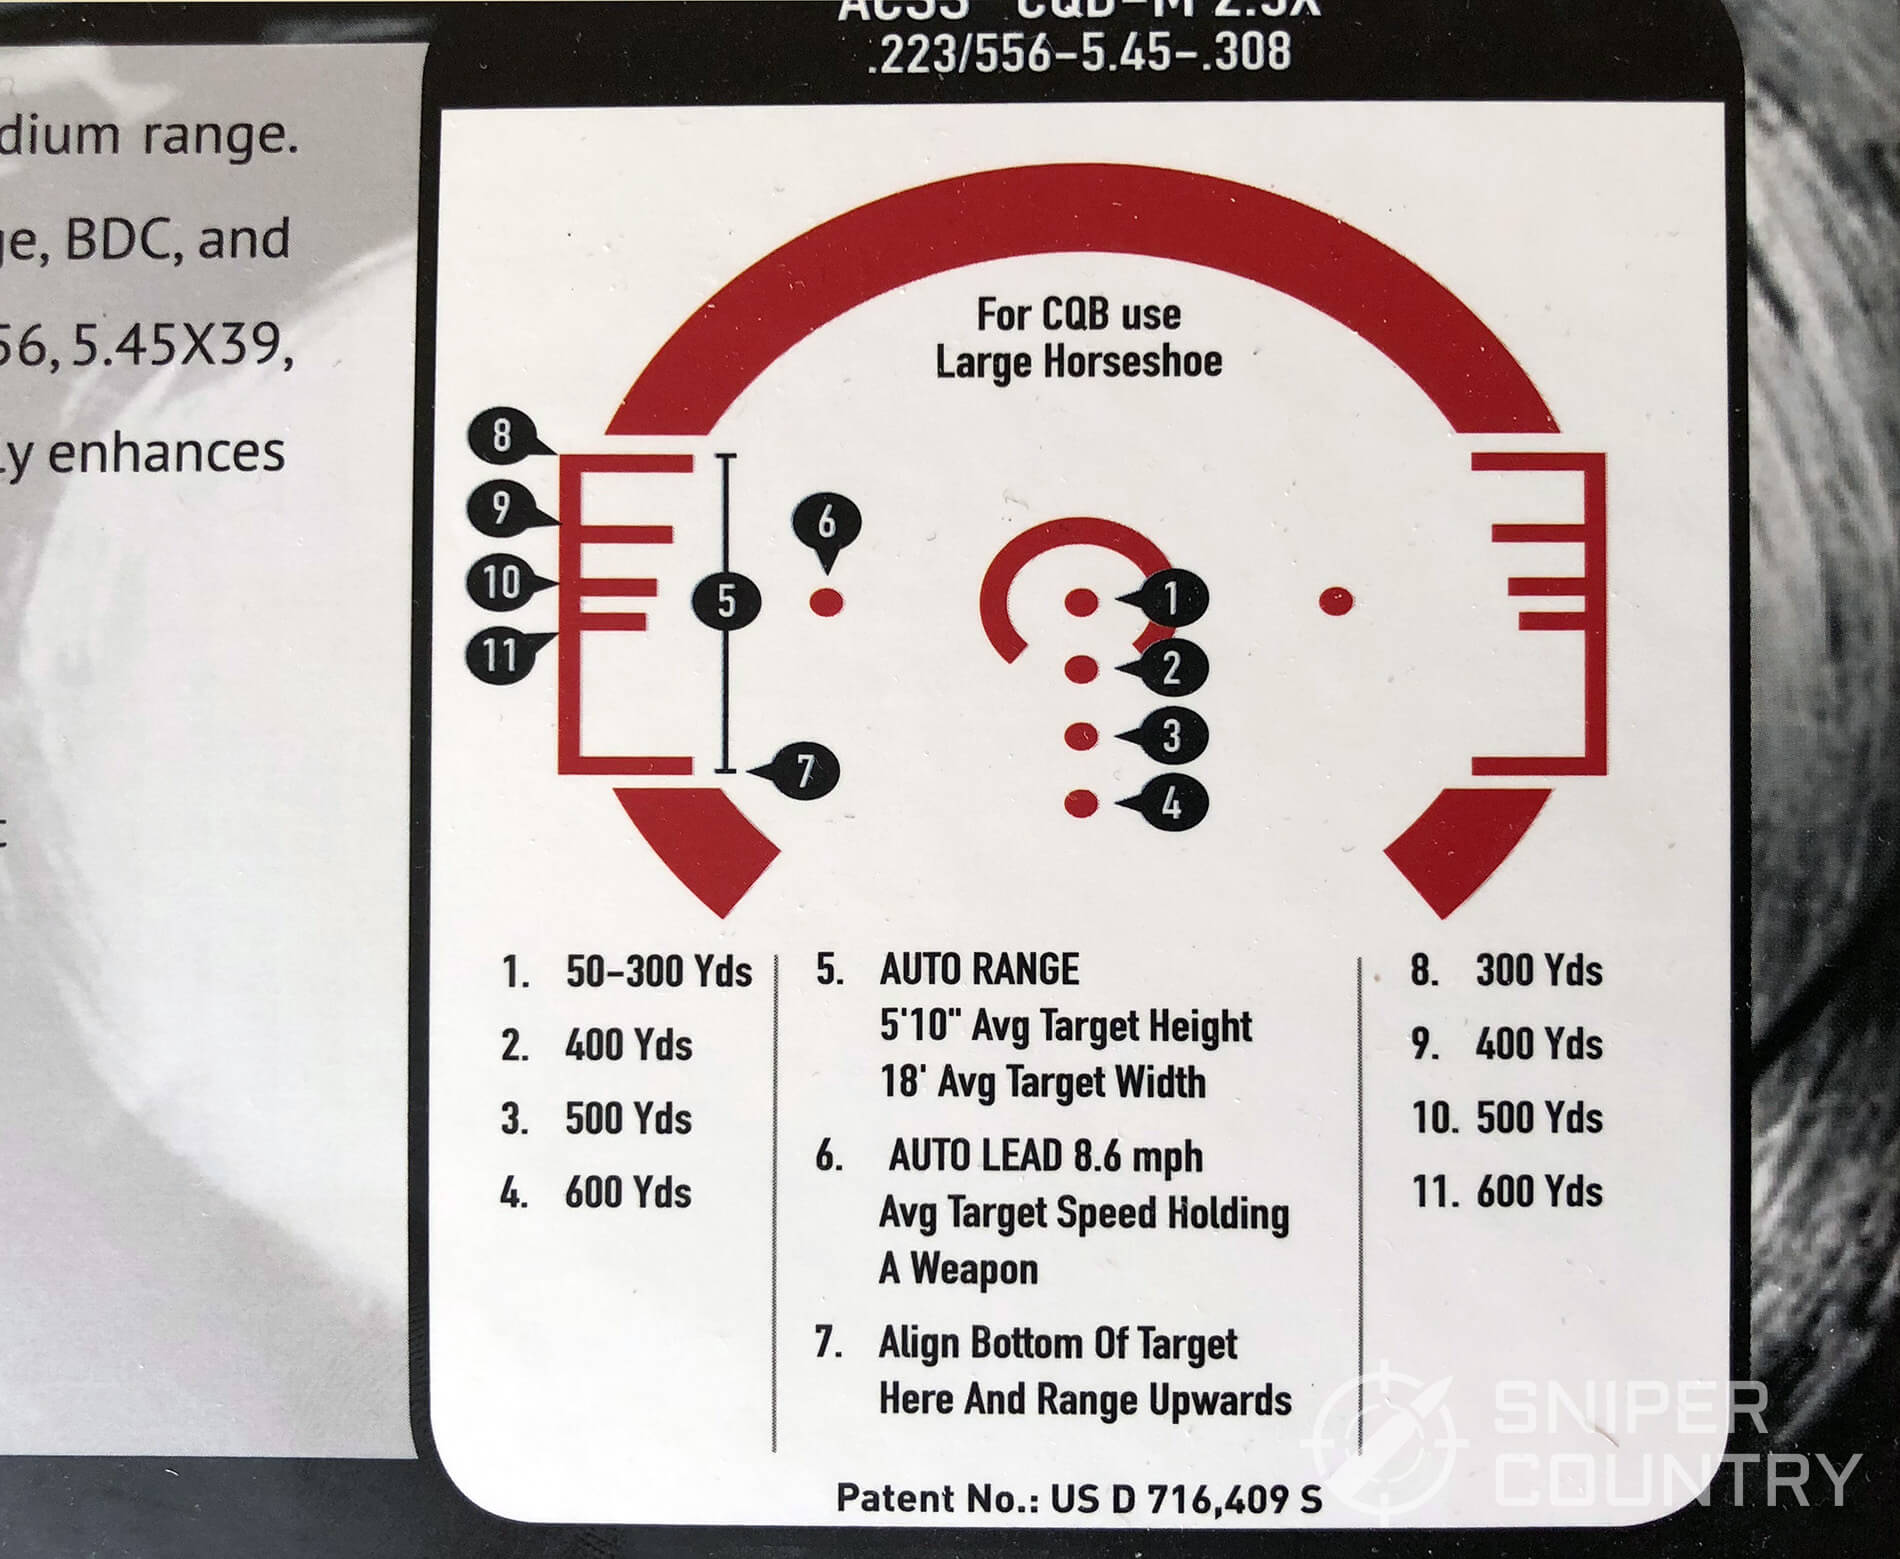 ACSS CQB-M Reticle instructions